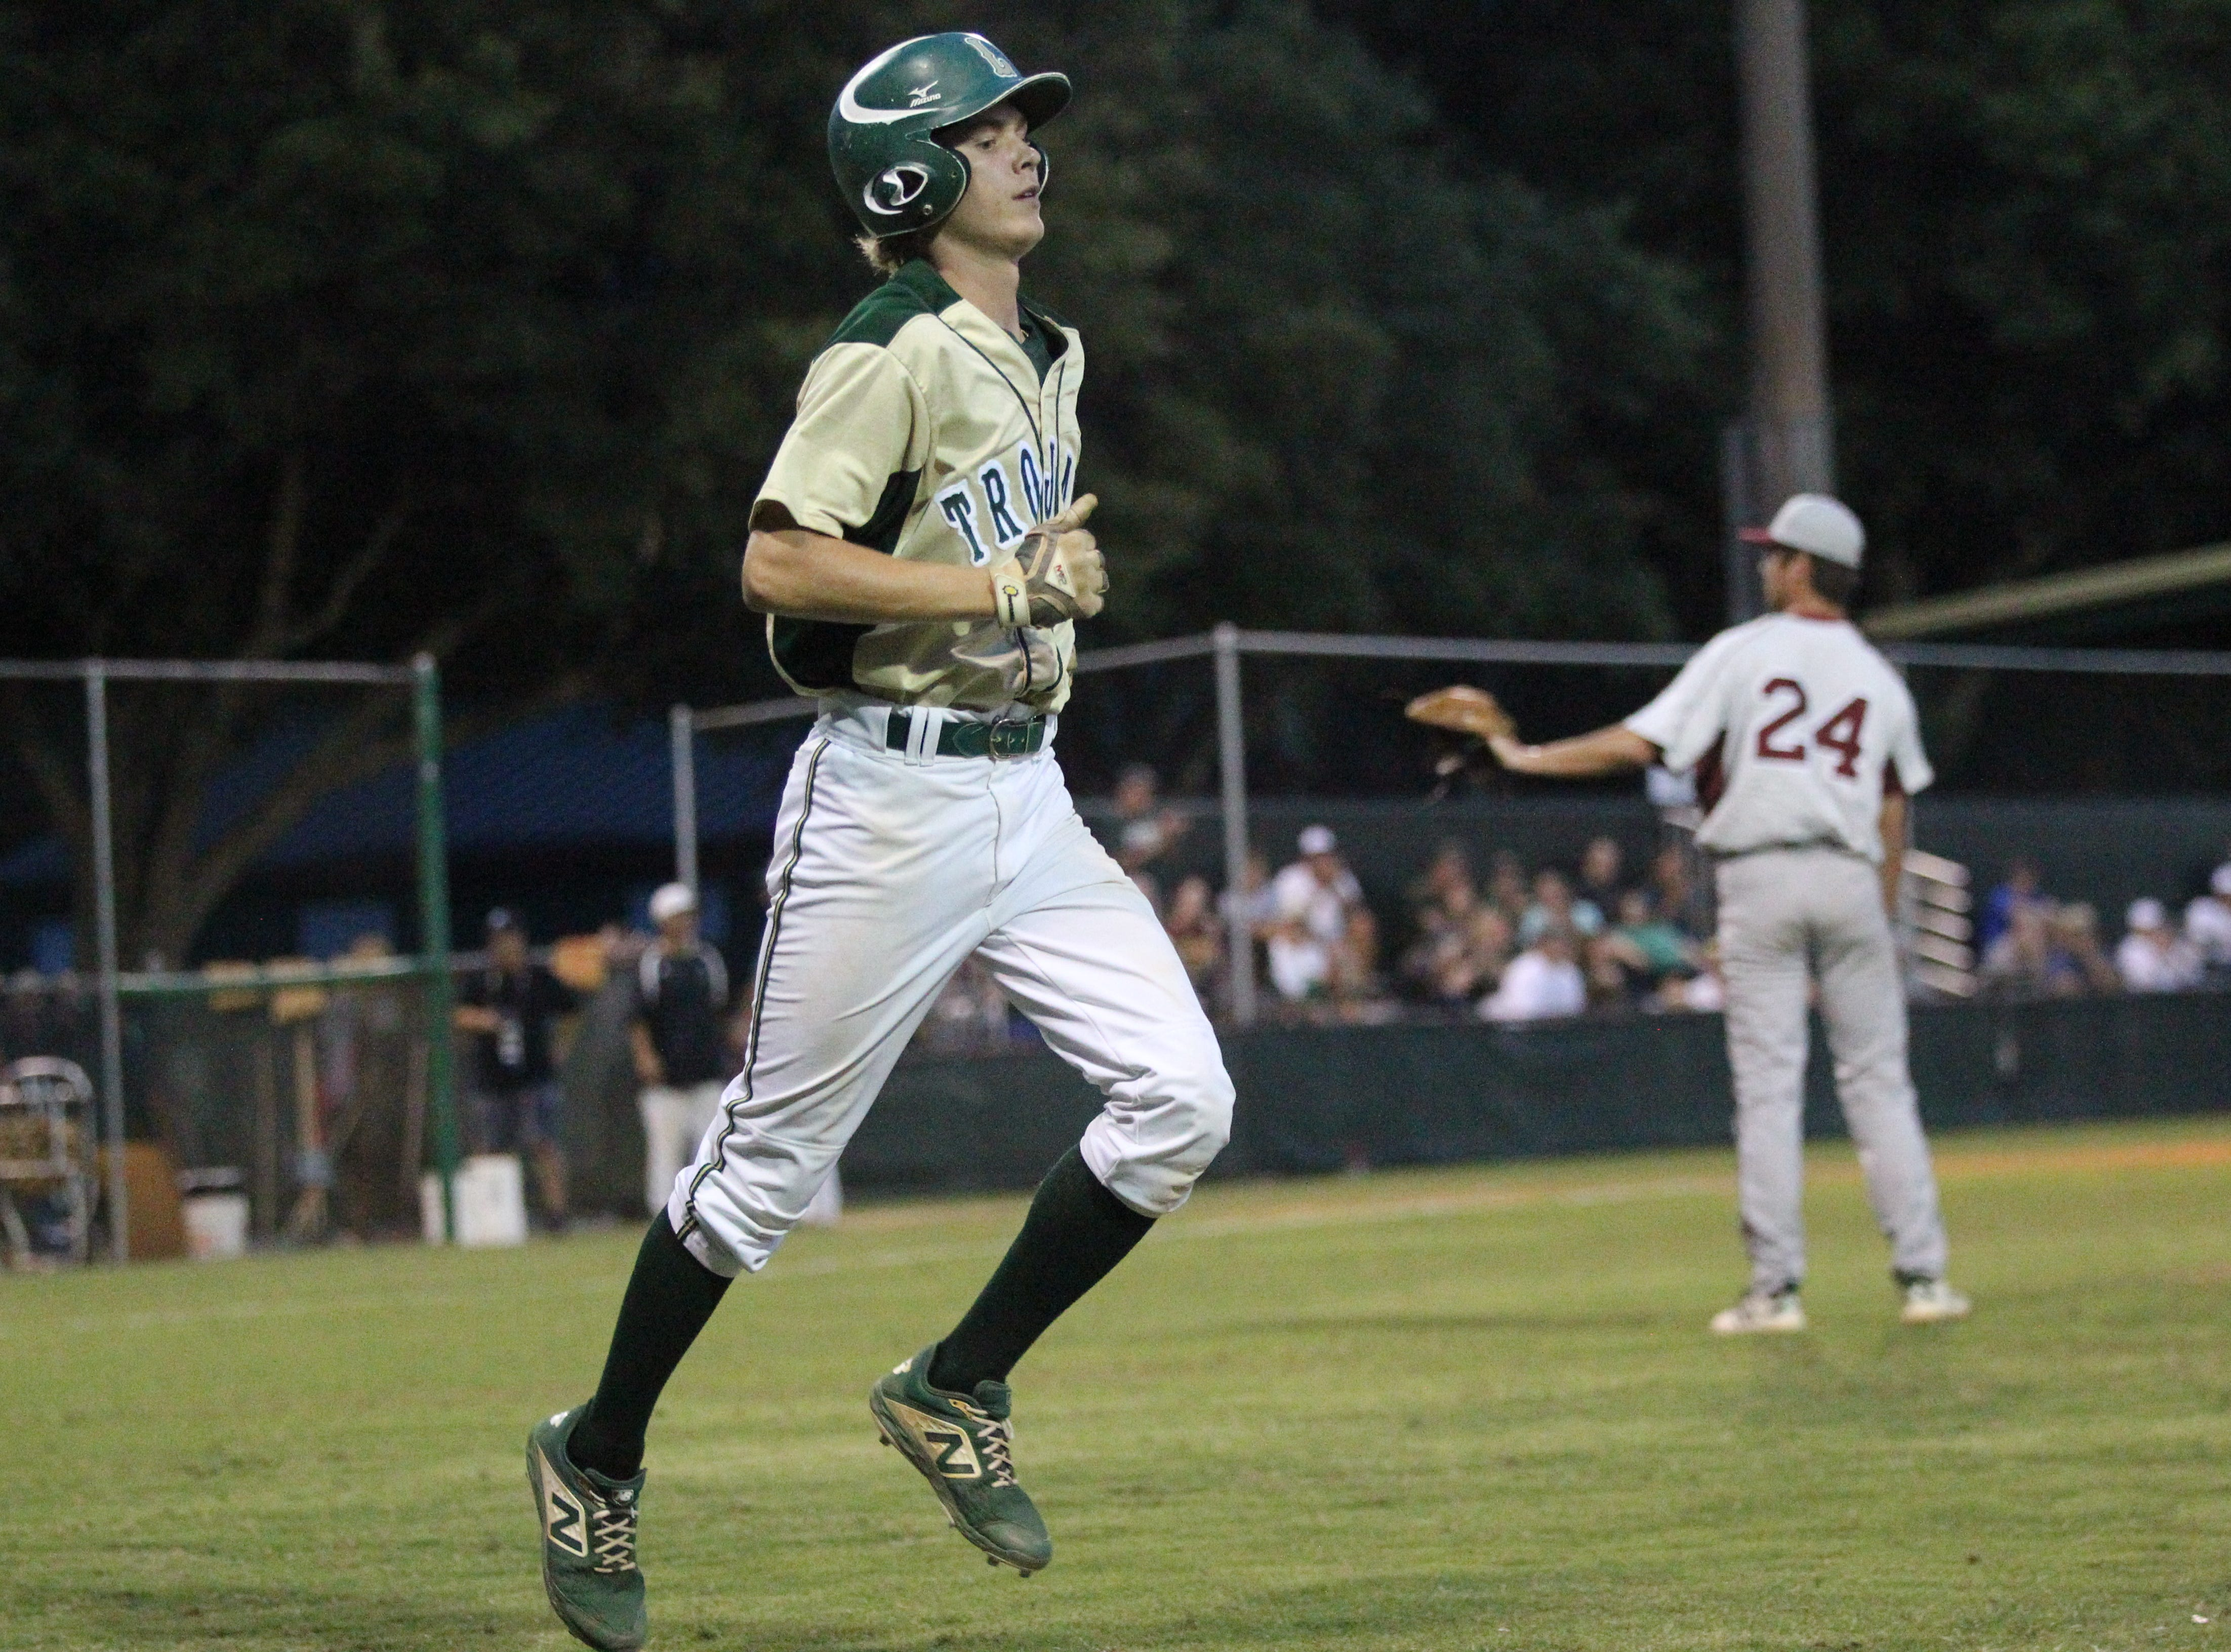 Lincoln senior Nick Standridge takes a walk as Lincoln baseball beat Chiles 5-4  in 10 innings during a District 2-8A championship game on Thursday, May 9, 2019.